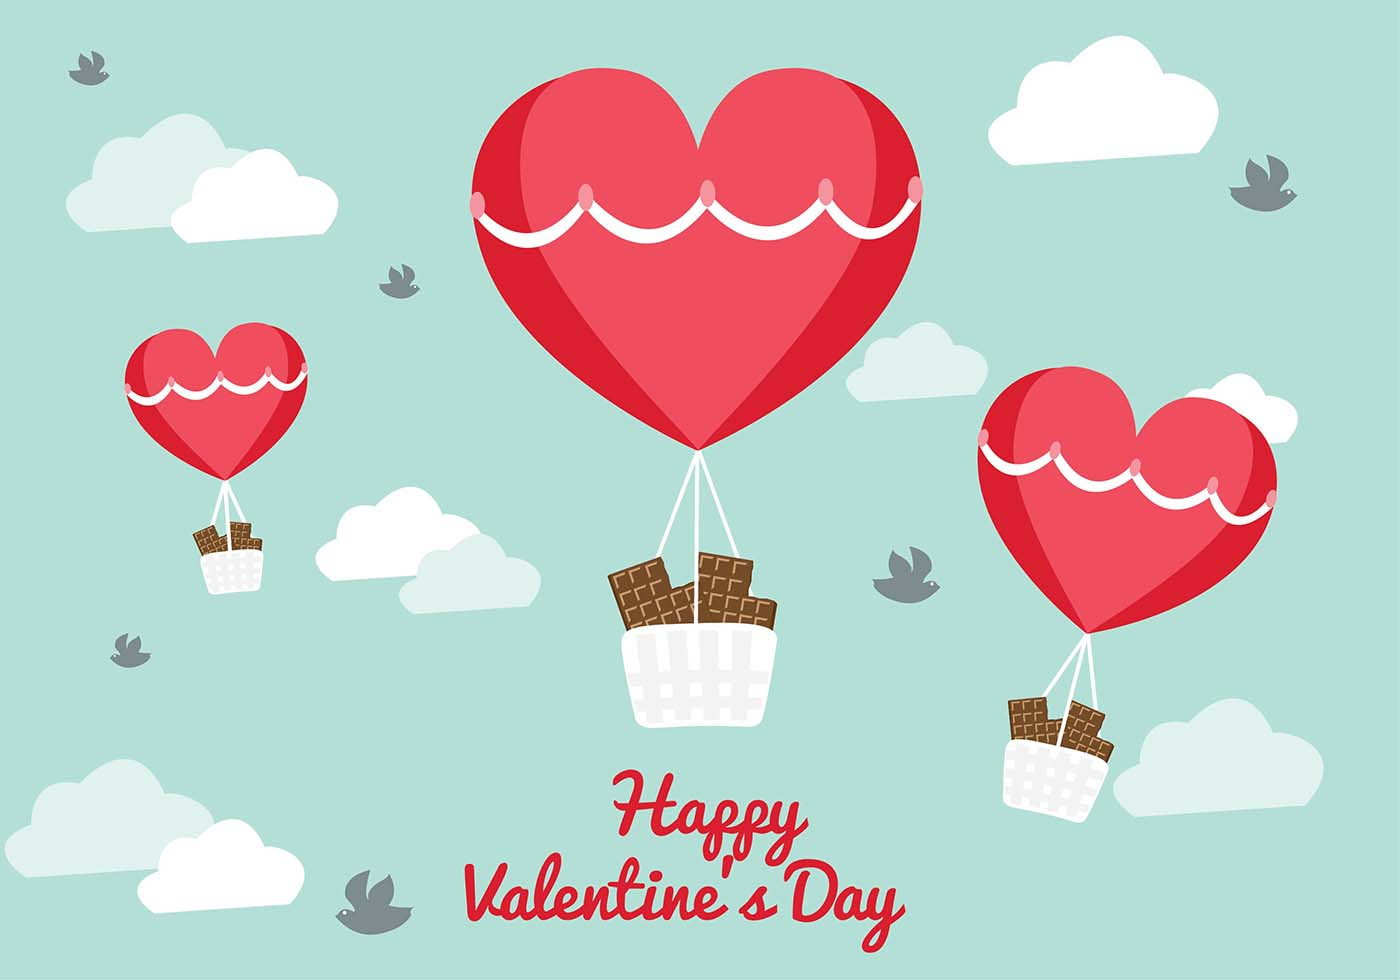 san valentin vector balloon background download free vector art stock graphics images. Black Bedroom Furniture Sets. Home Design Ideas